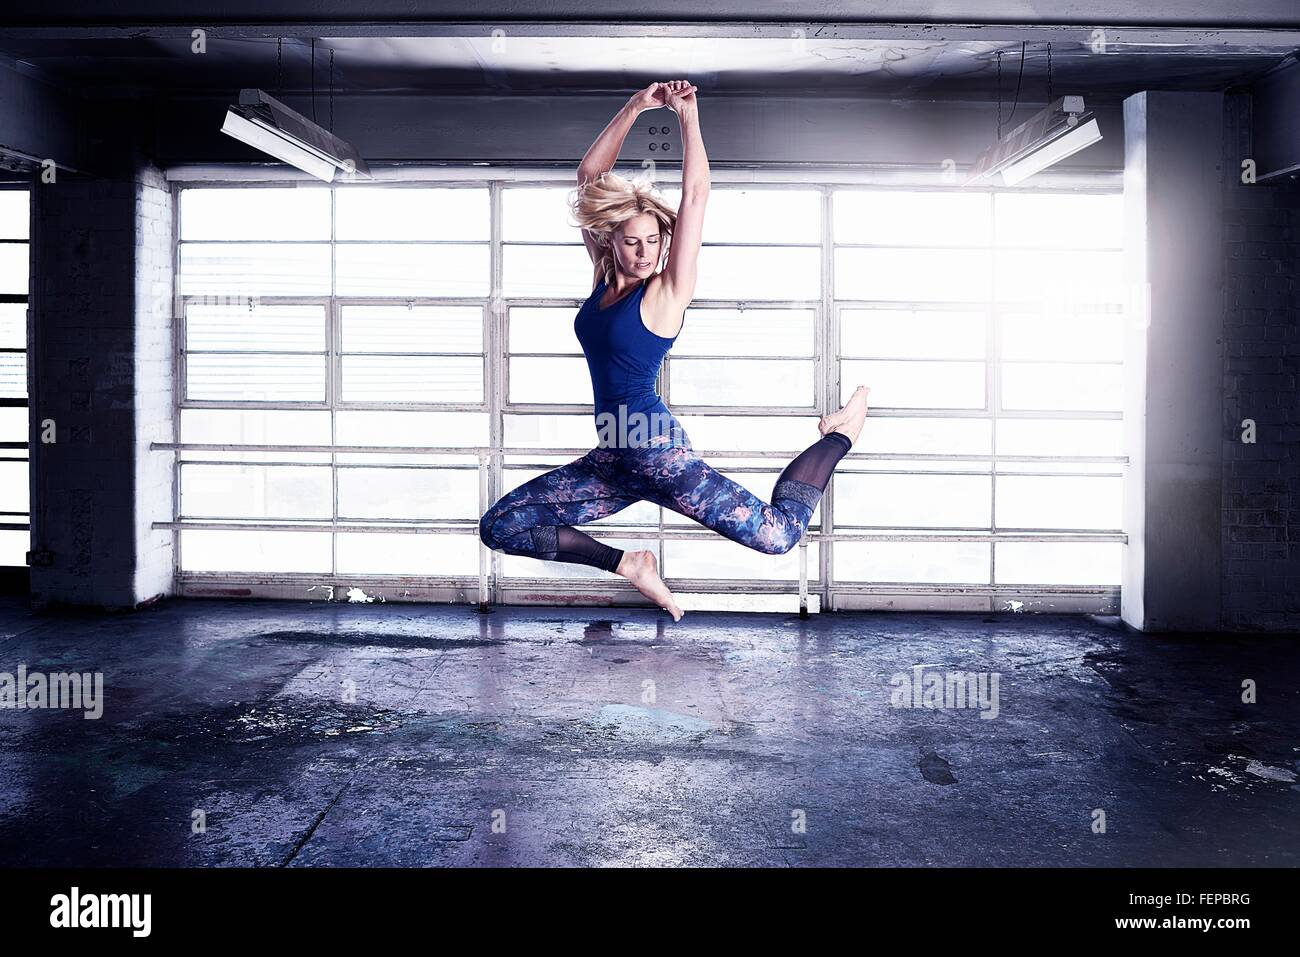 Female dancer leaping in front of warehouse window - Stock Image